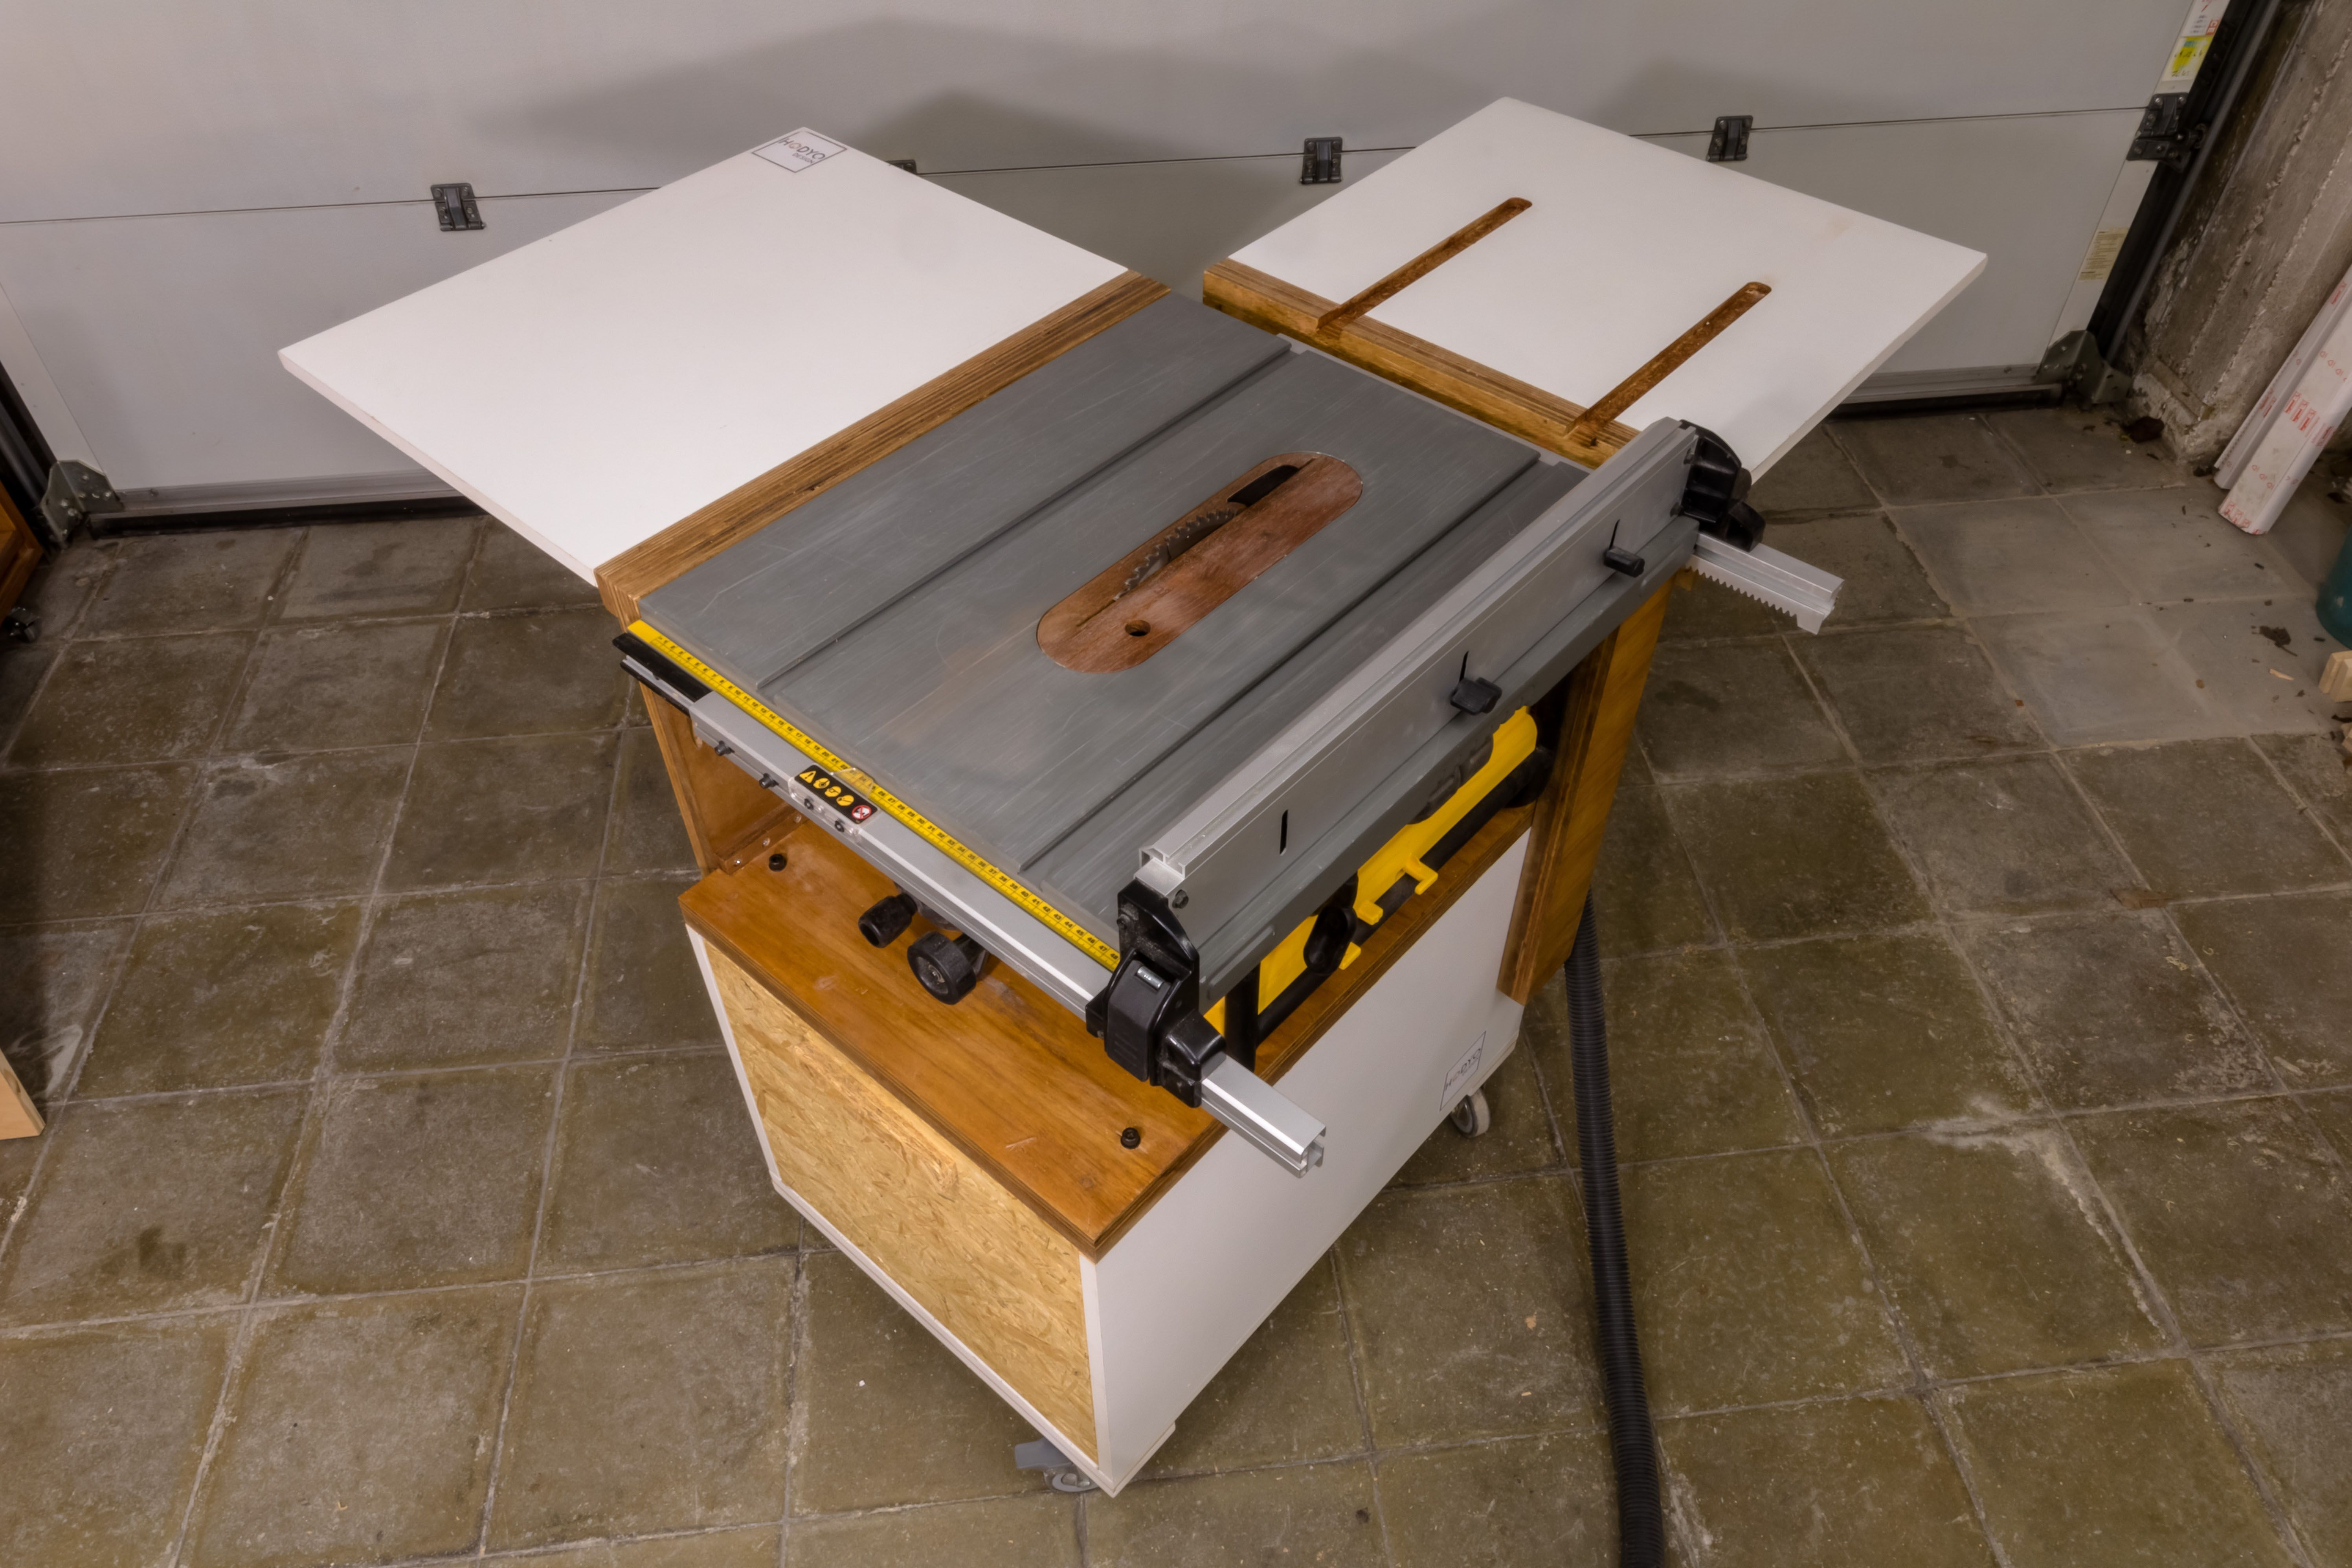 Mobile Table Saw Stand for a DeWalt DW745 Mobiler tisch